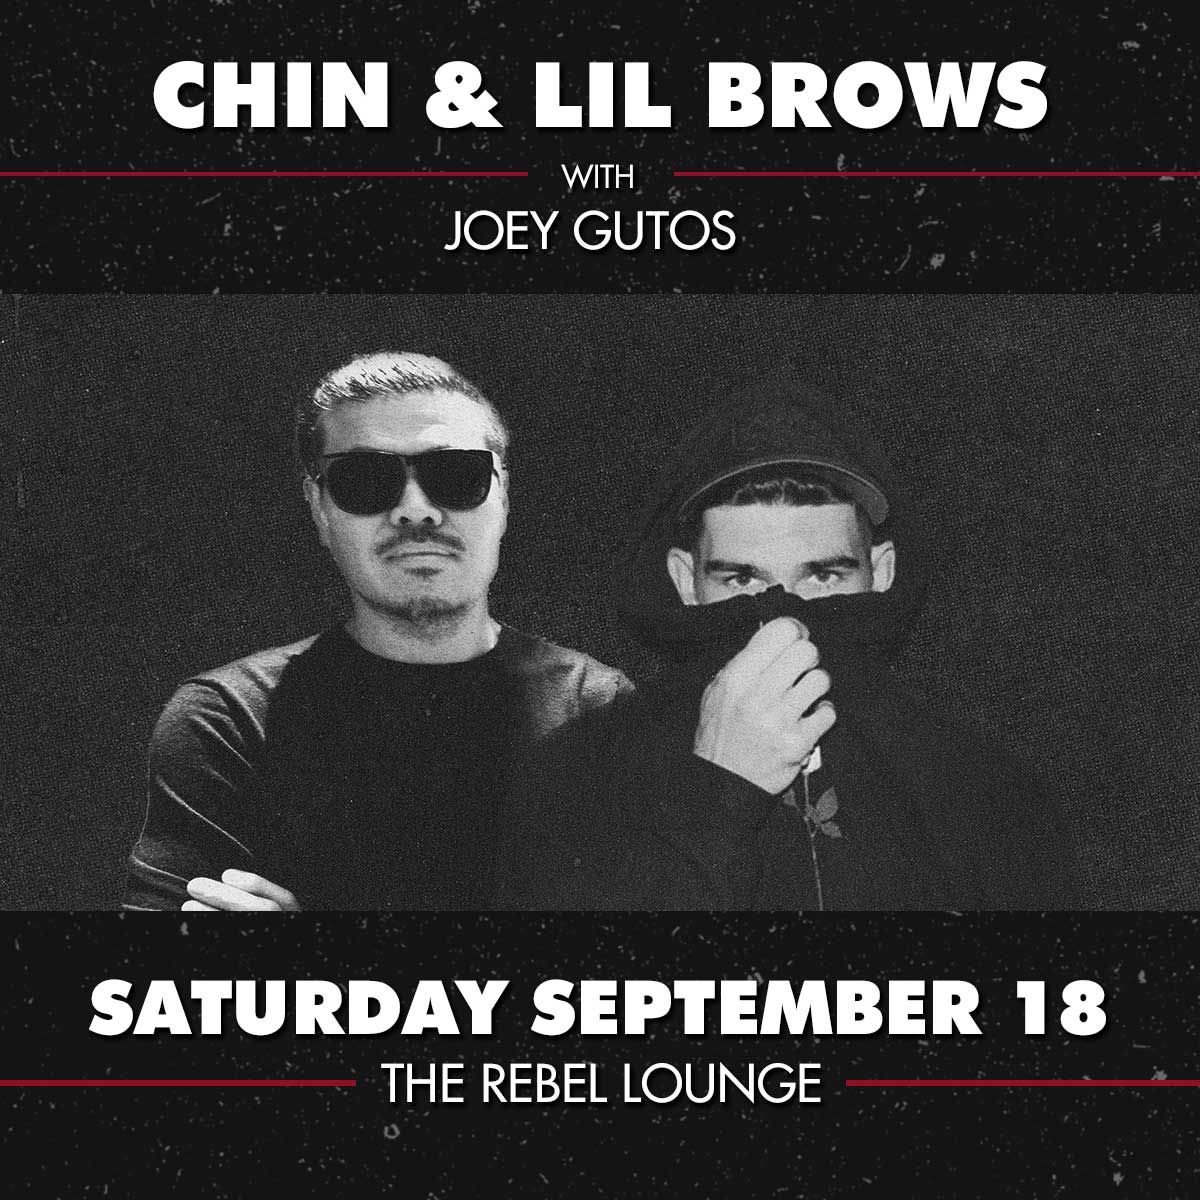 CHIN and LIL BROWS: